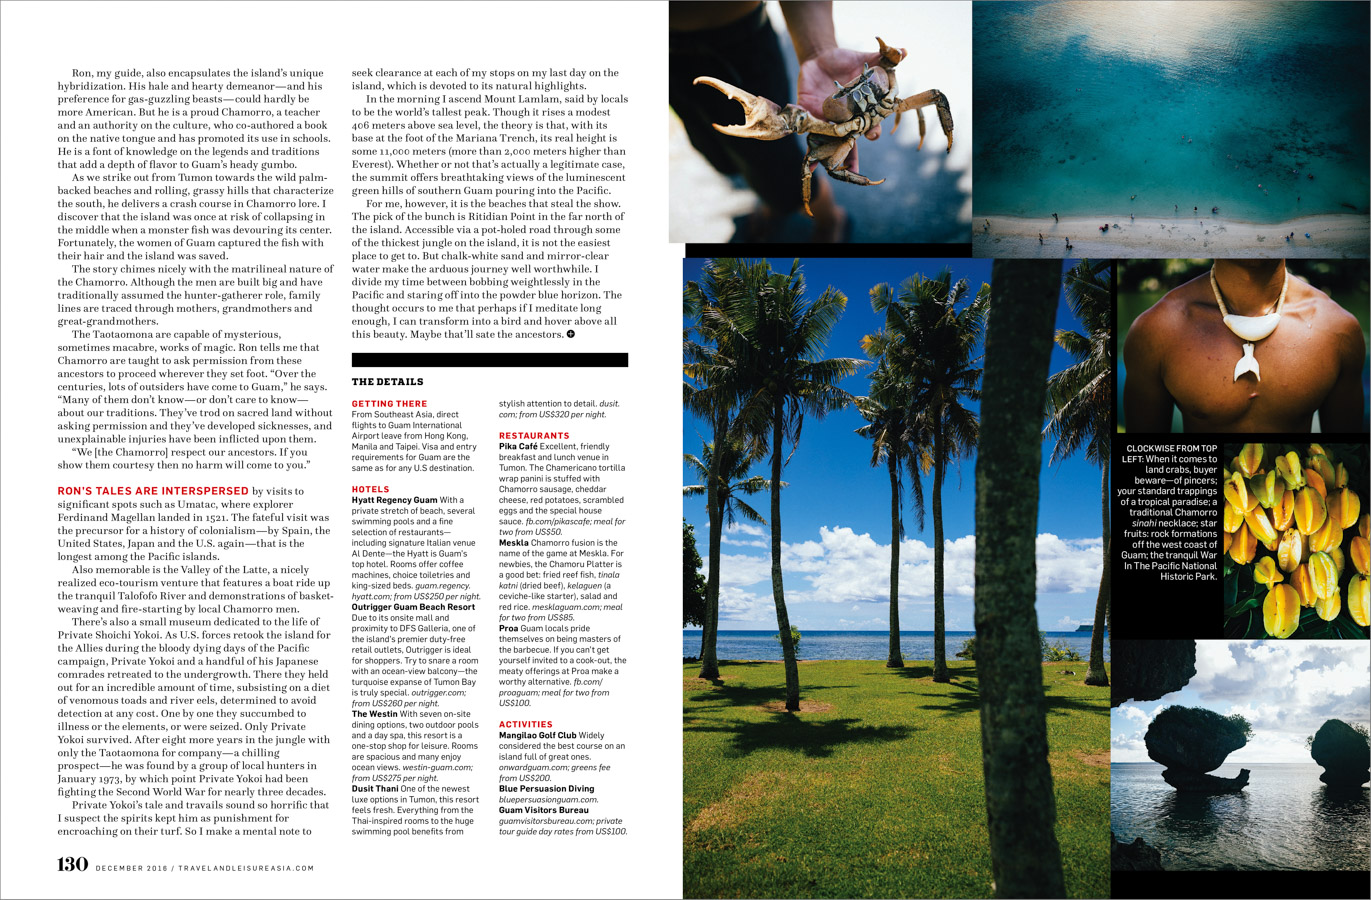 A travel feature on the island of Guam.